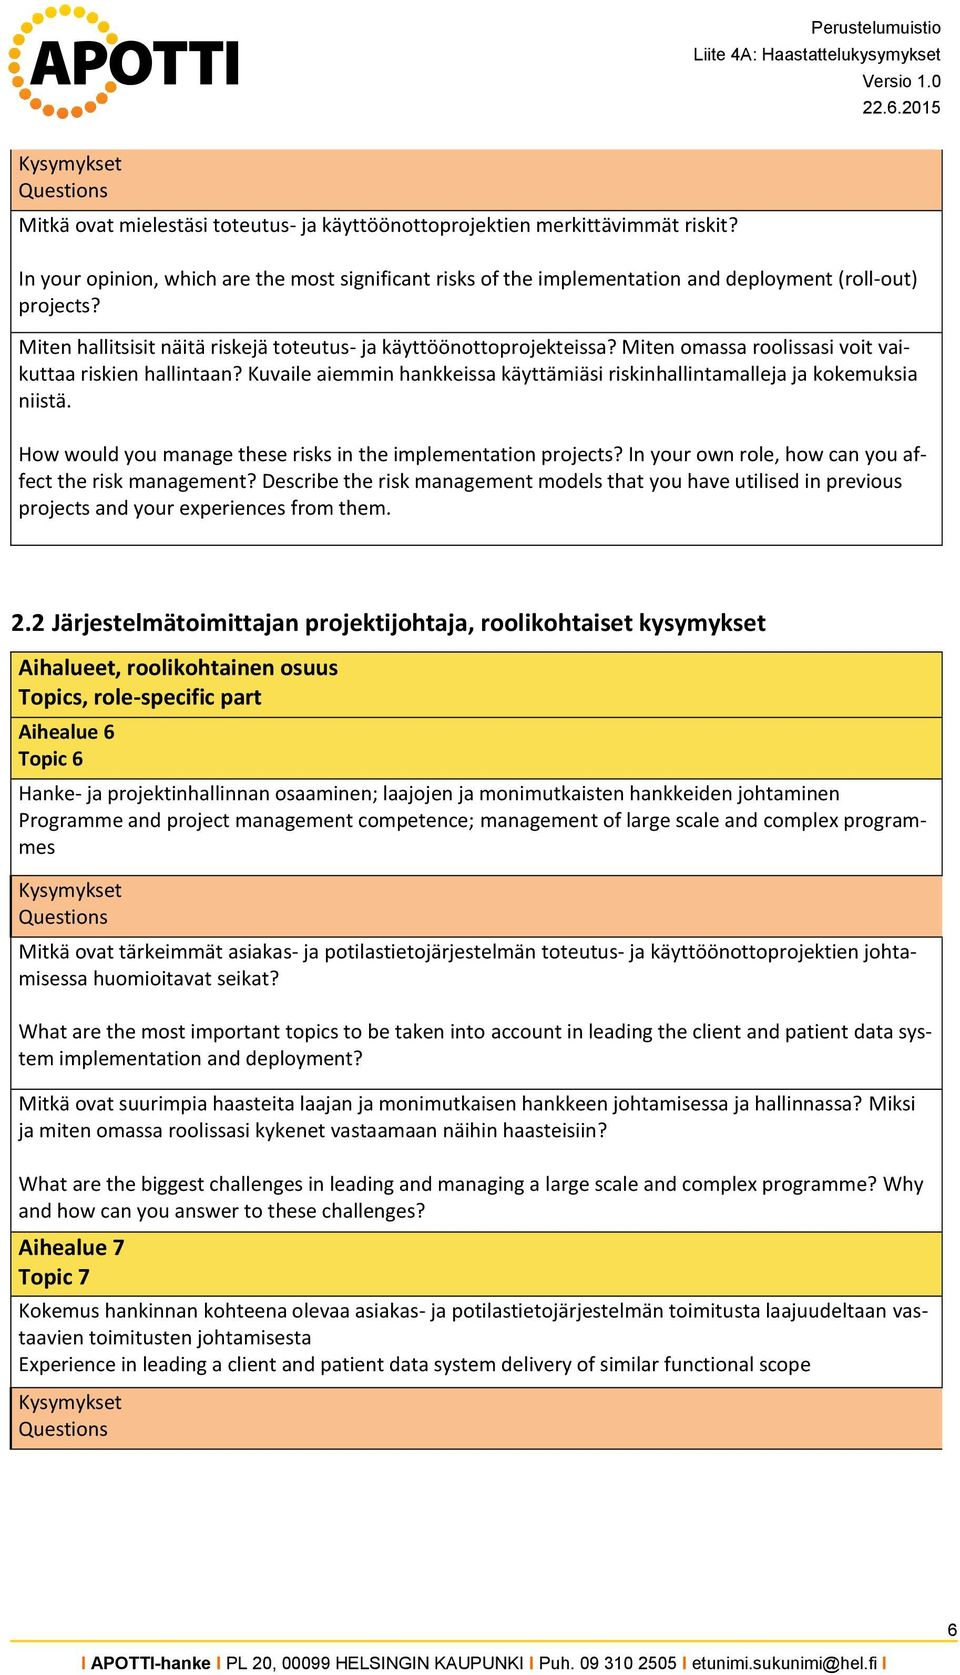 Kuvaile aiemmin hankkeissa käyttämiäsi riskinhallintamalleja ja kokemuksia niistä. How would you manage these risks in the implementation projects?